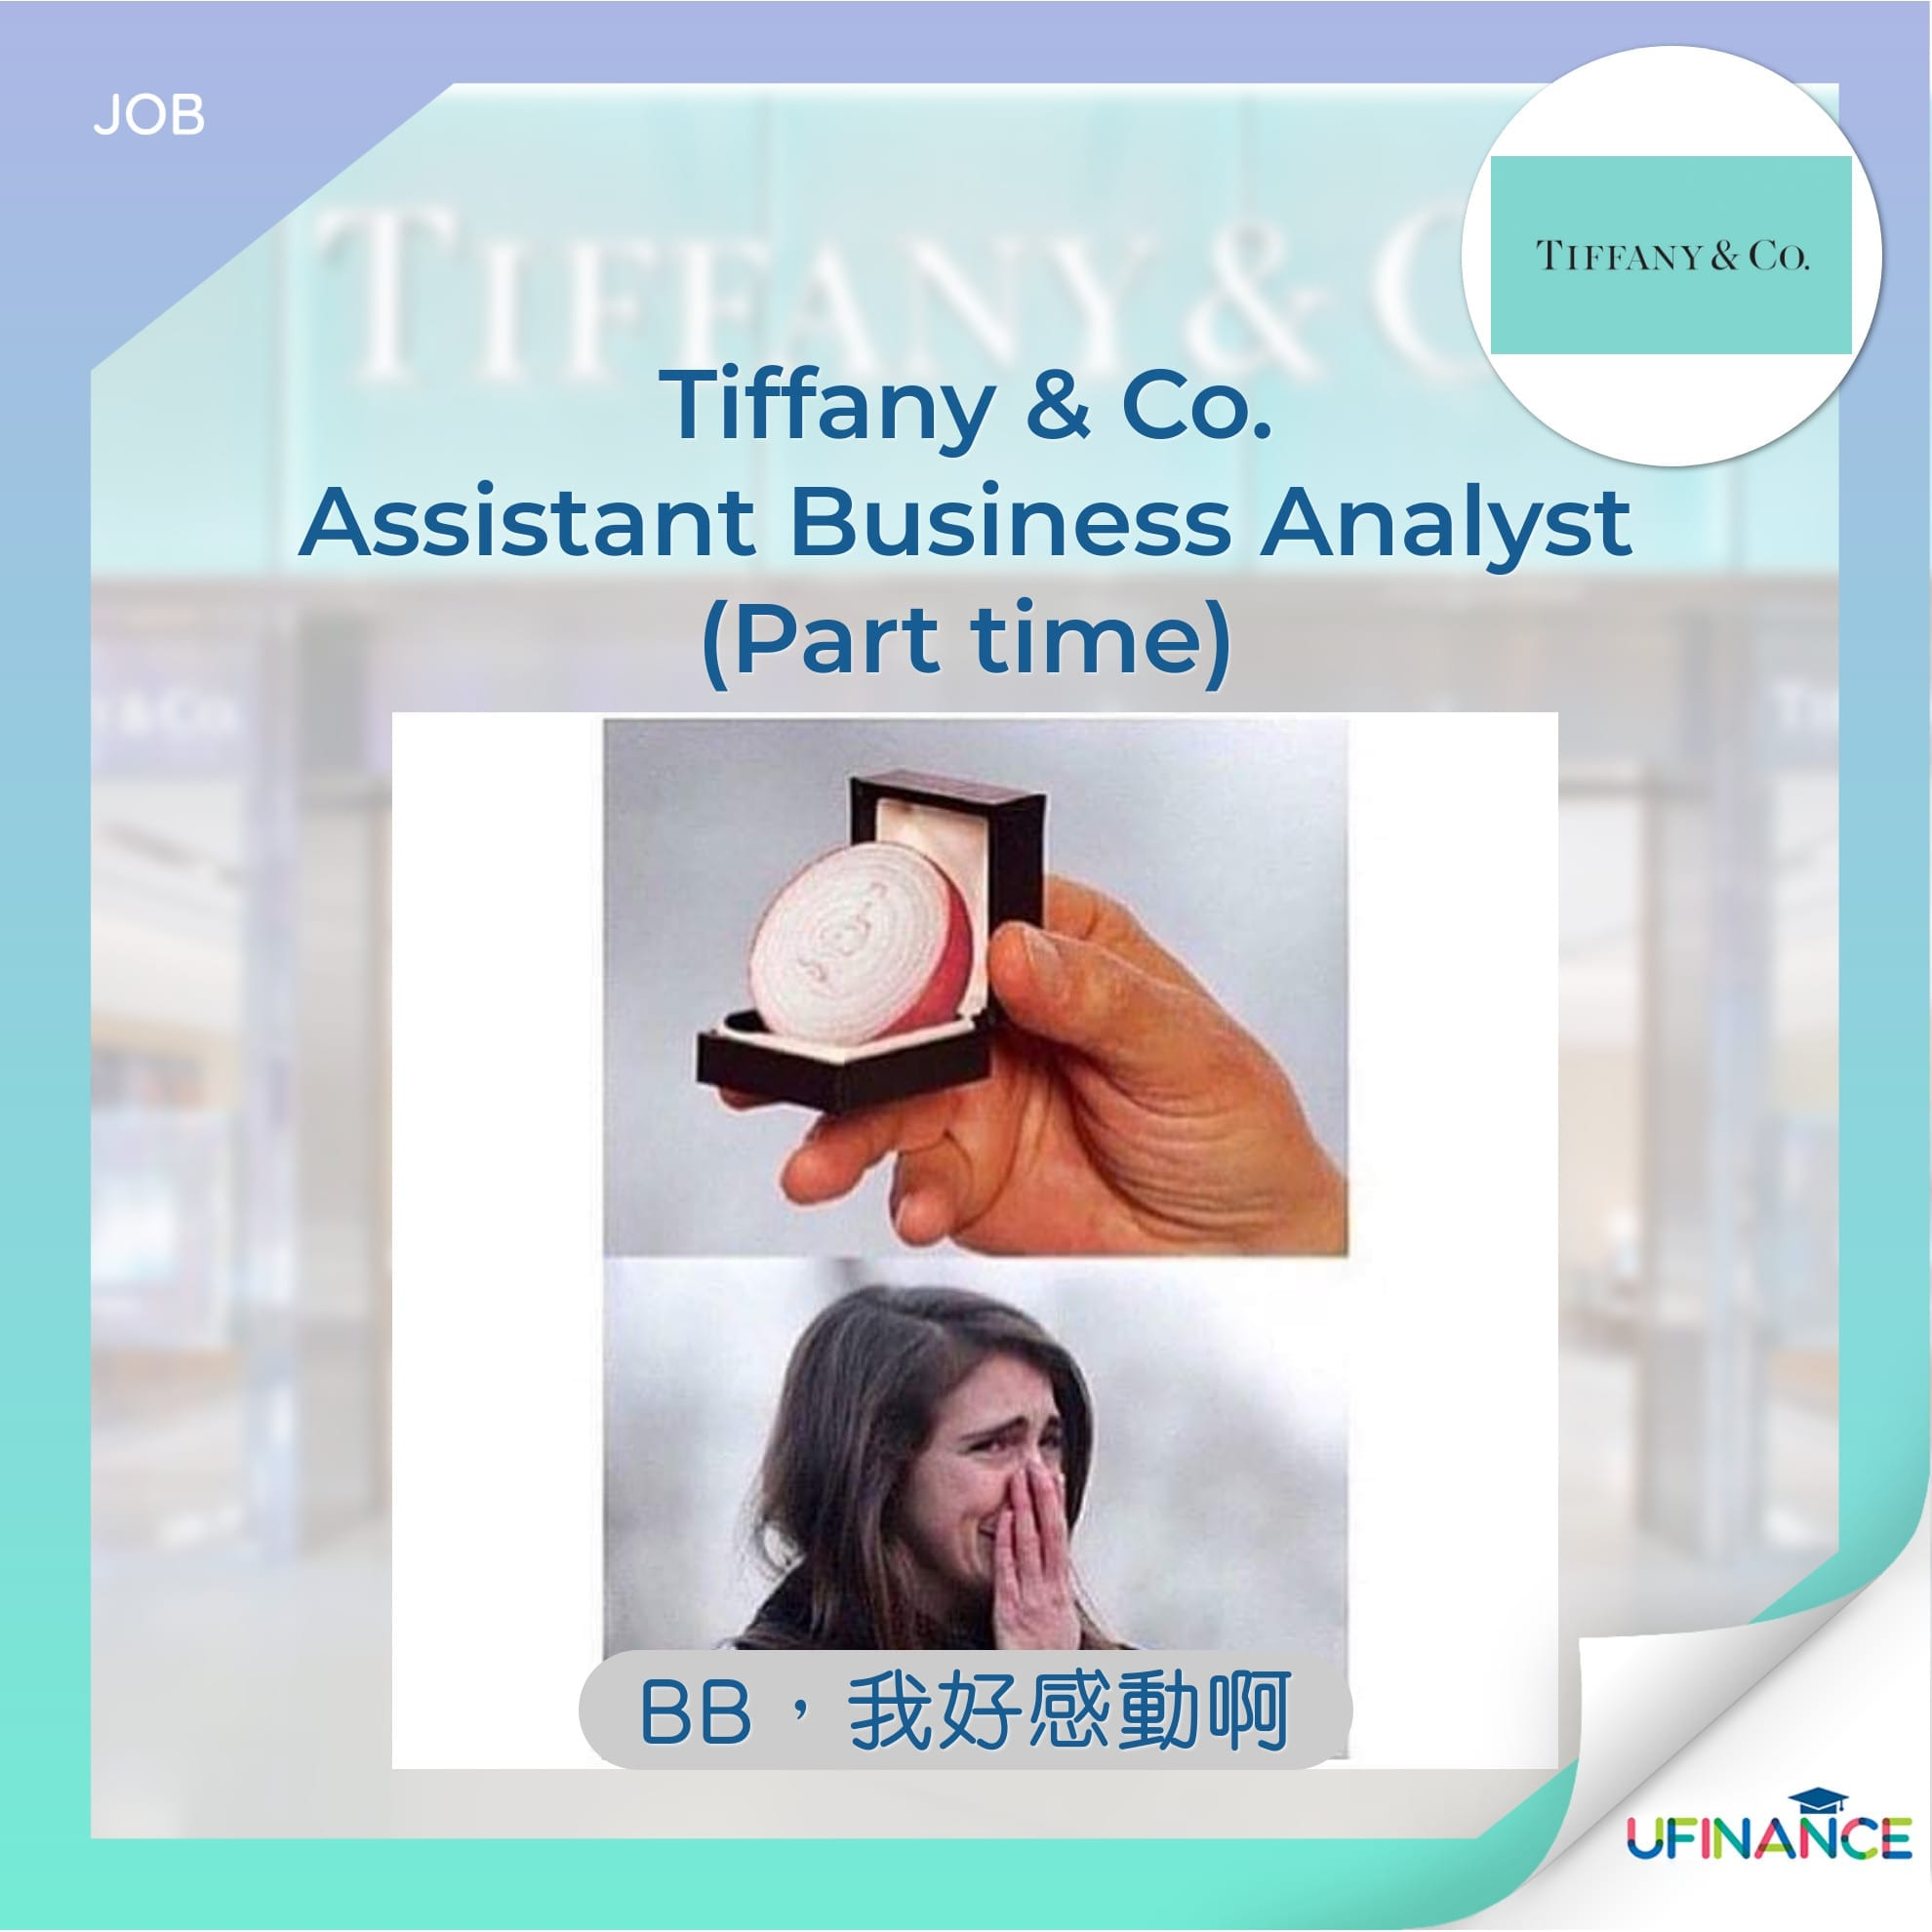 【名媛淑女】Tiffany & Co. - Assistant Business Analyst (Part time)